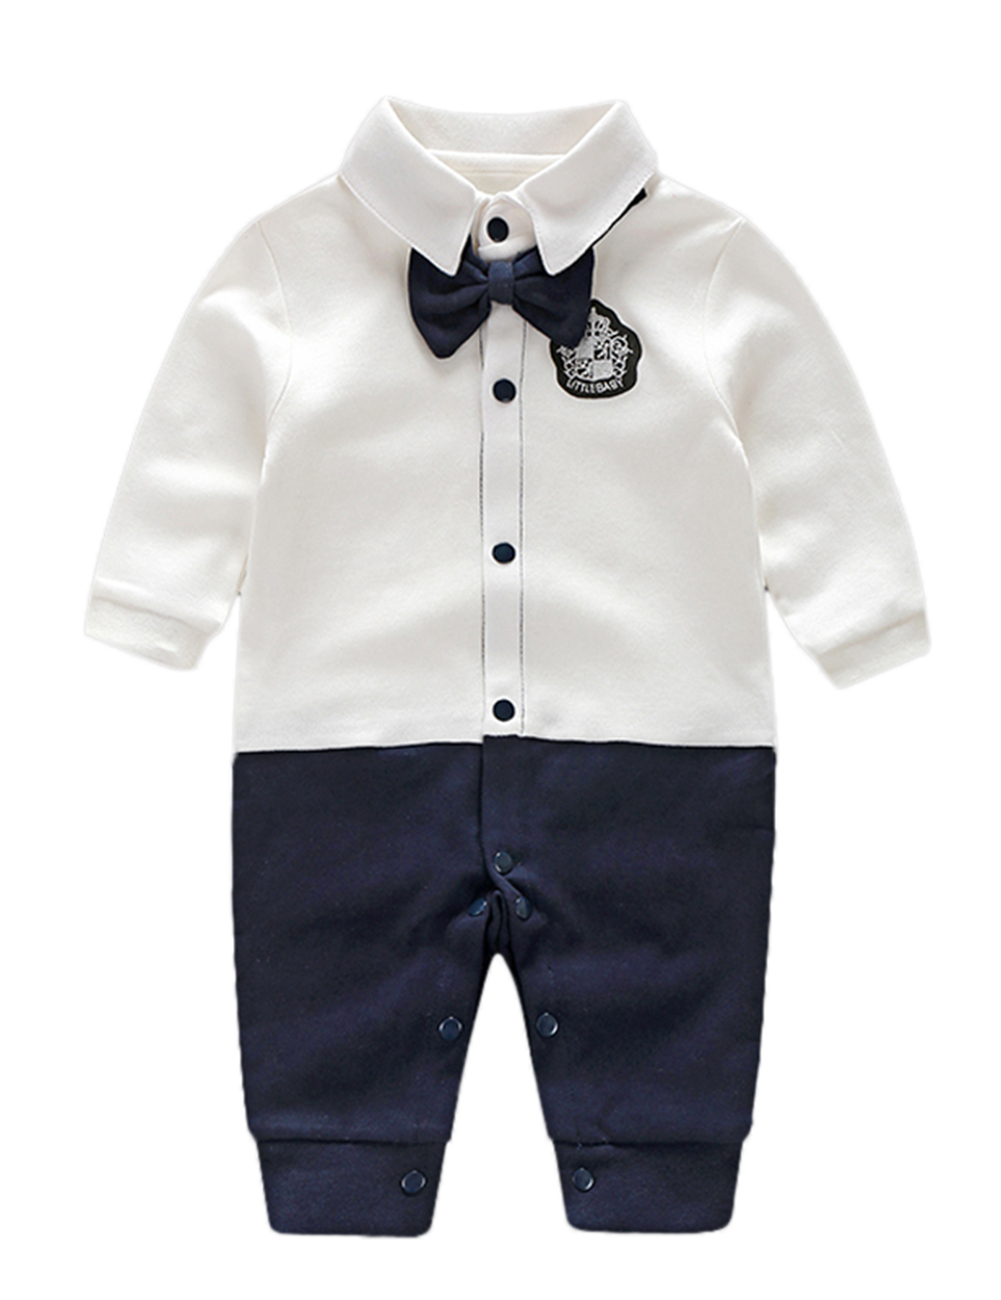 Fashion Gentleman Style Toddler Baby Rompers Soft Cotton Warm Breathable Jumpsuits Christmas Gift